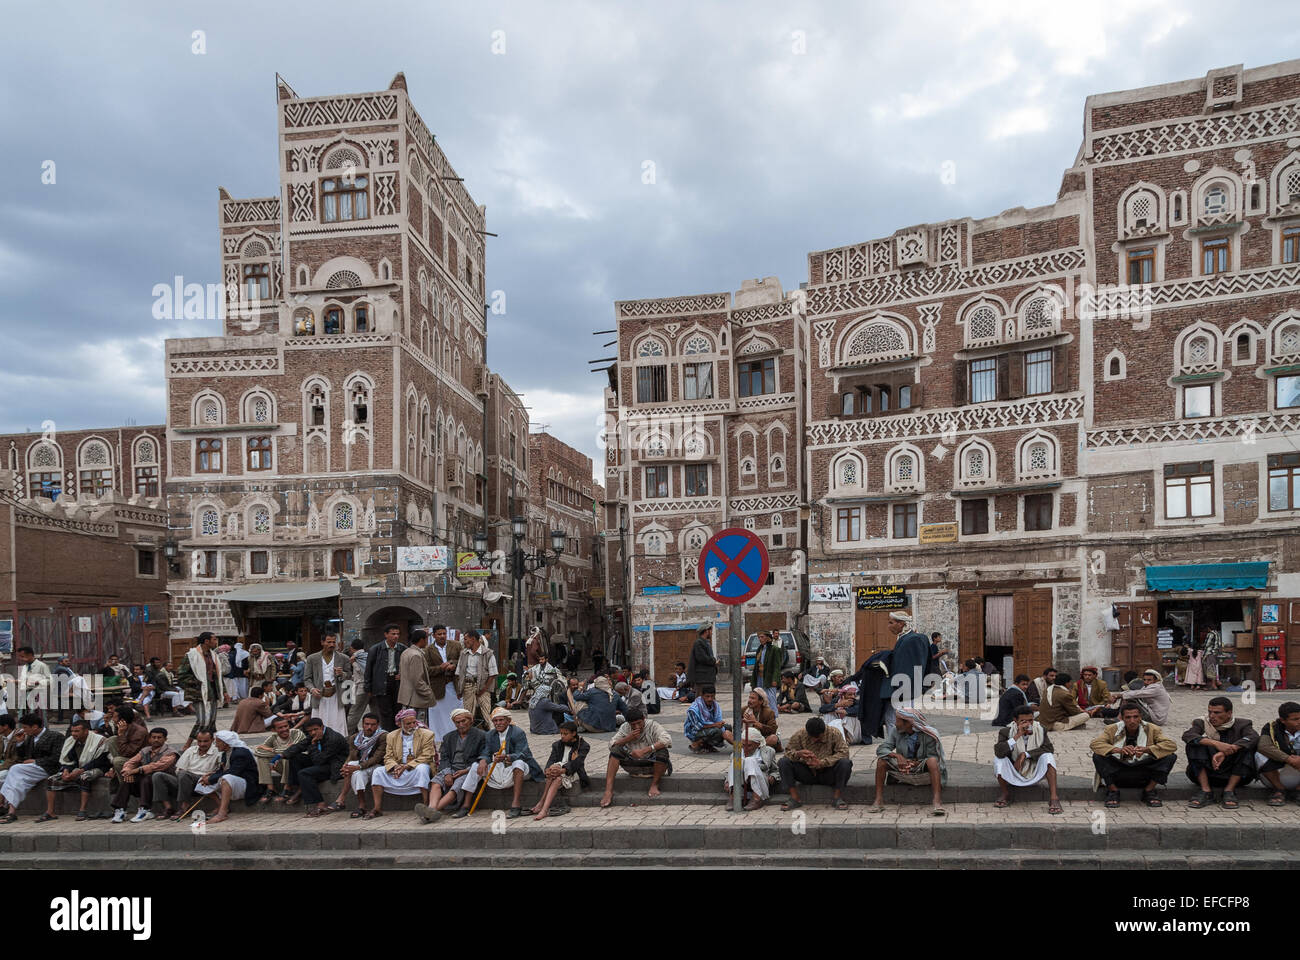 Unidentified men sit in the main square of the city on May 4, 2007 in Sanaa, Yemen. - Stock Image